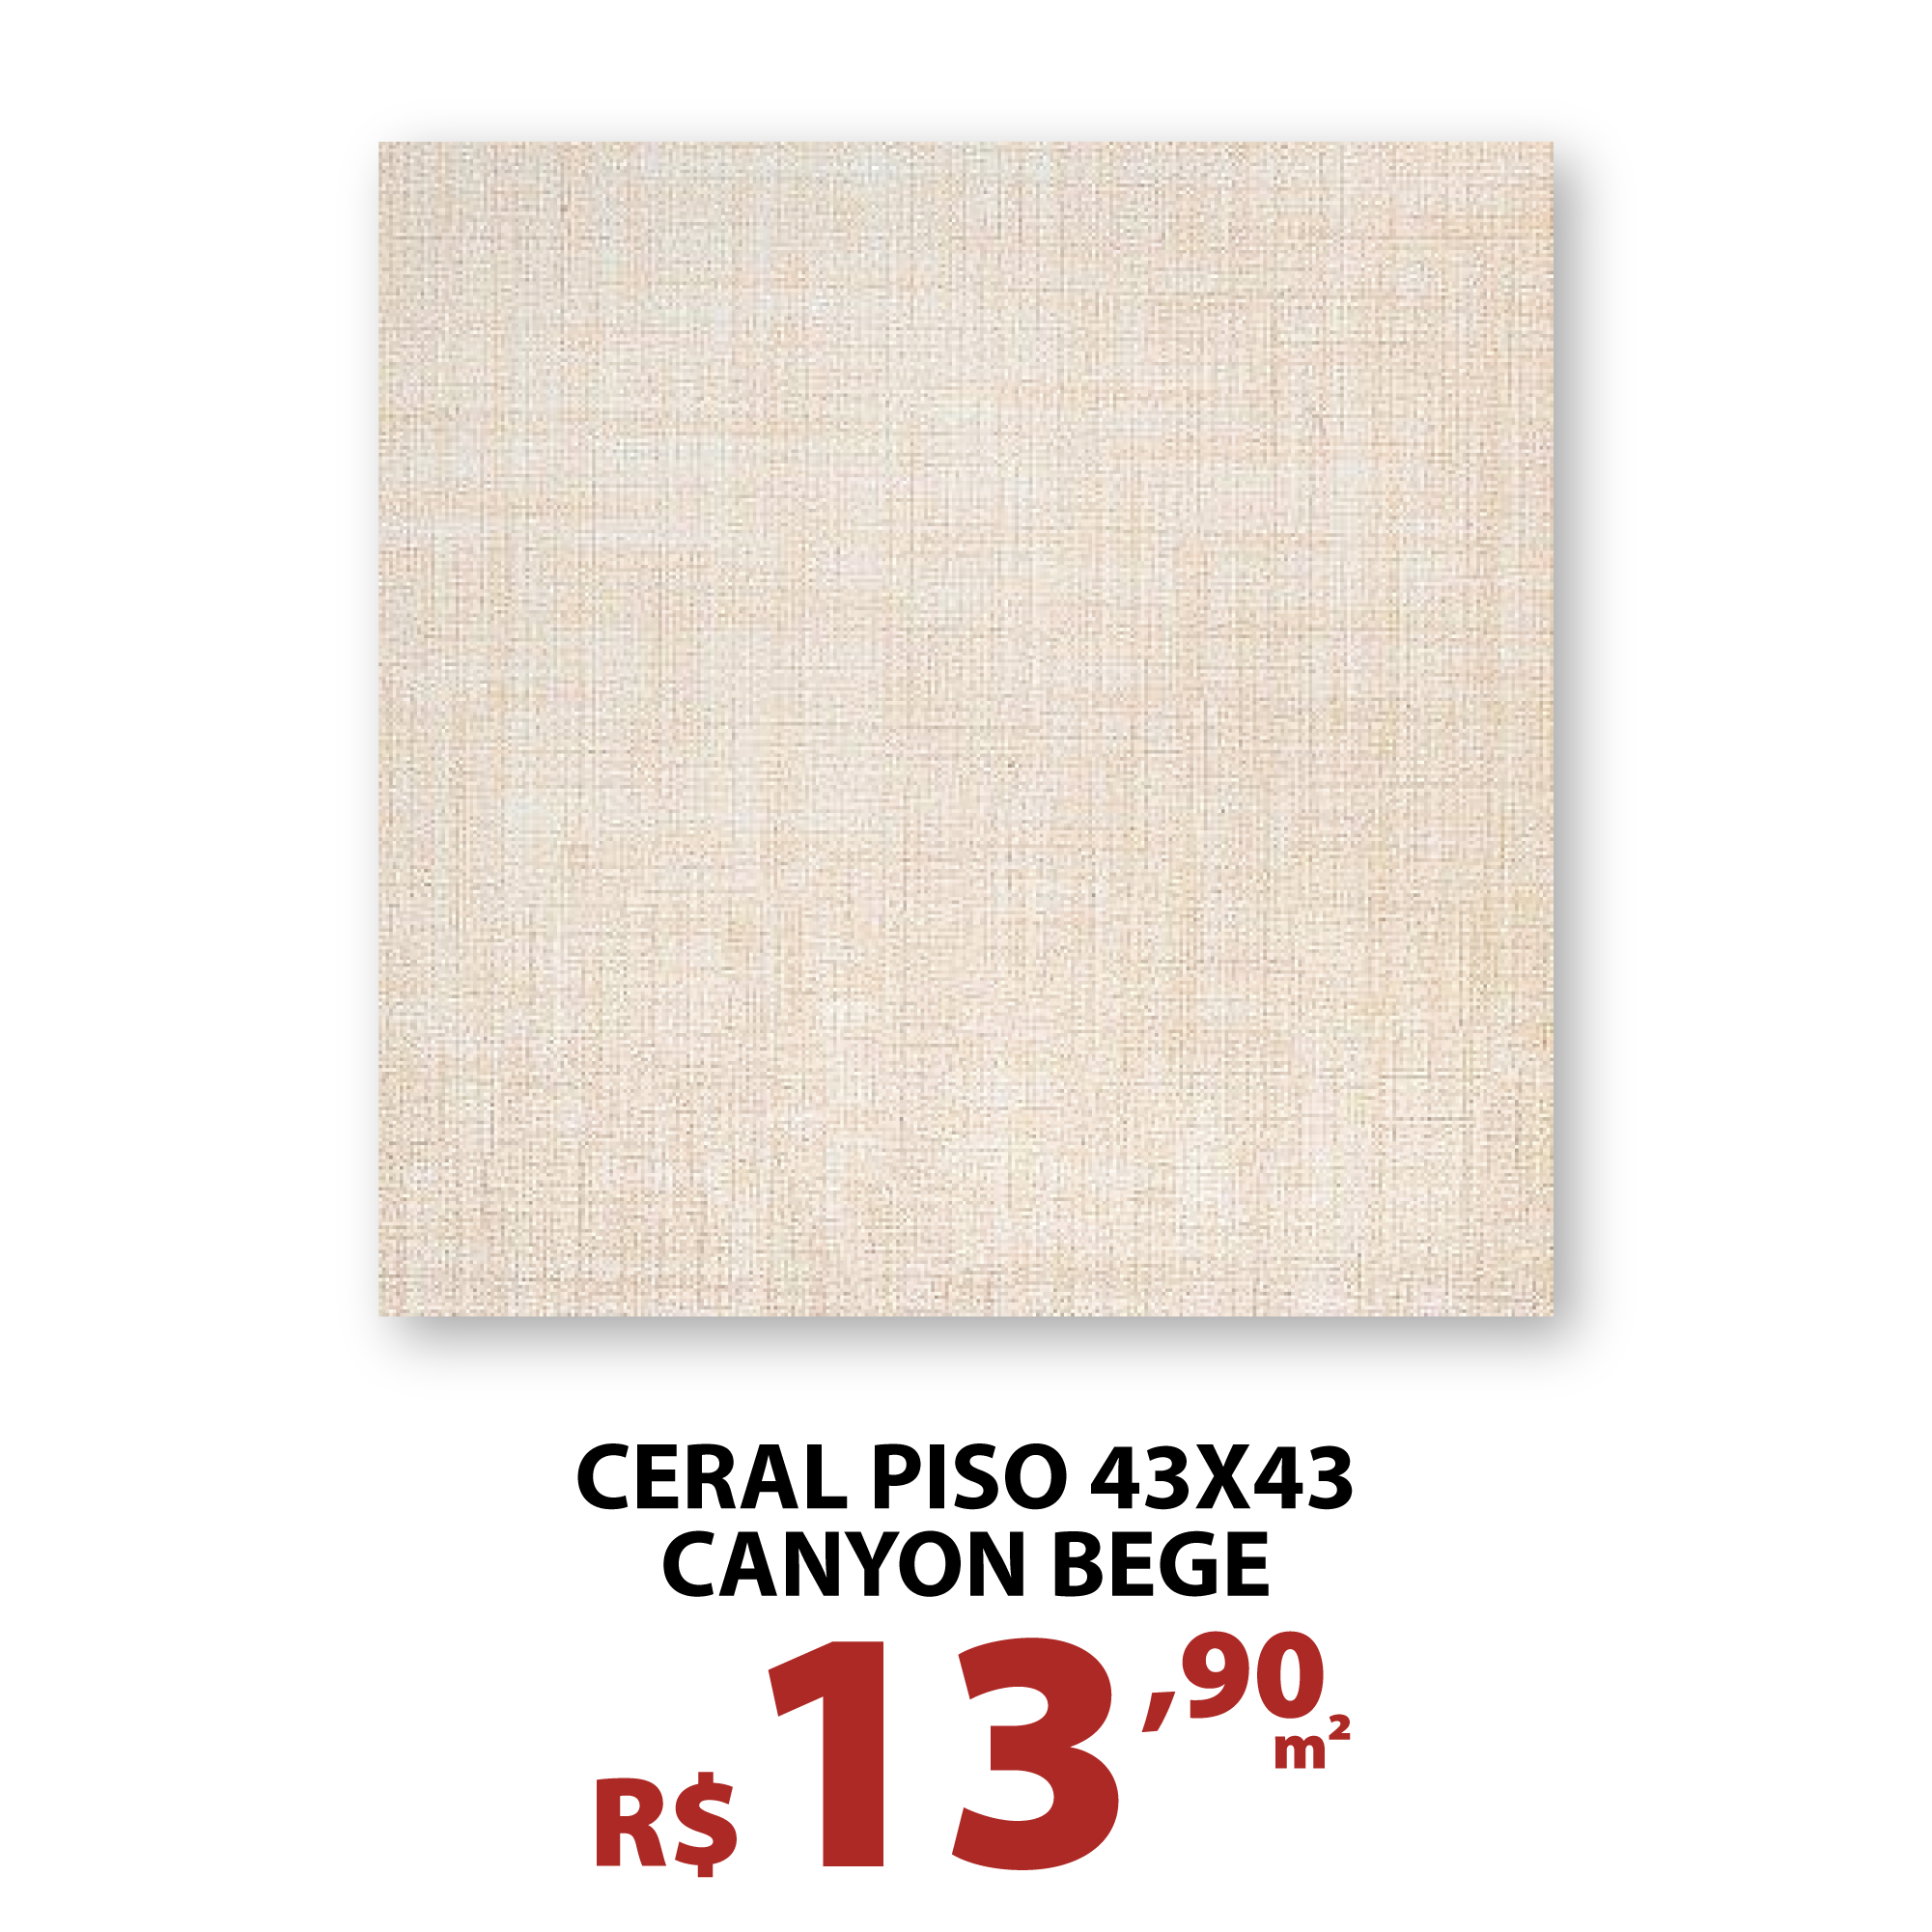 CERAL PISO 43X43 CANYON BEGE